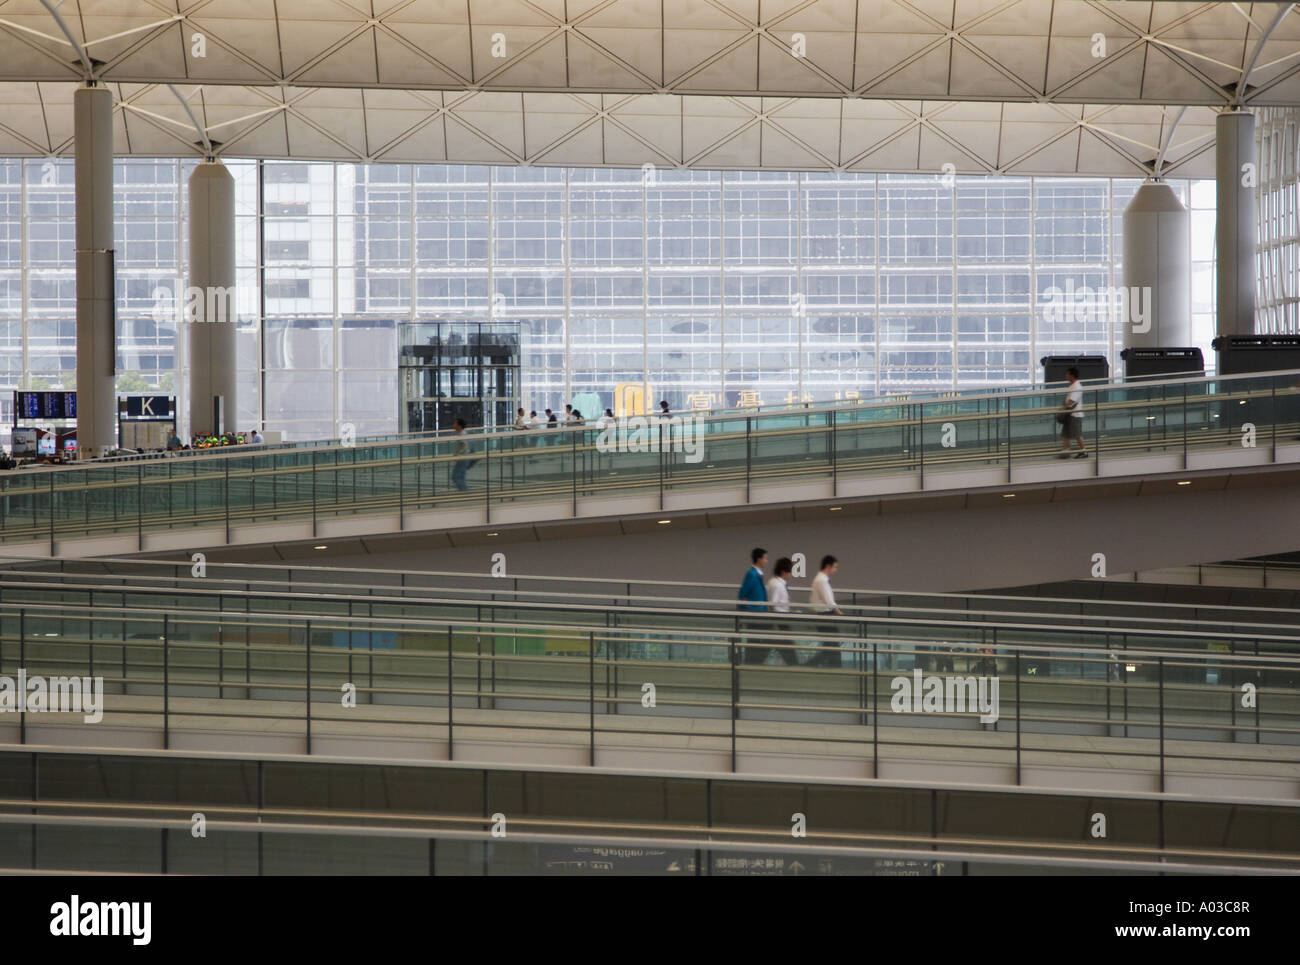 Passengers Walking Along Ramps At Hong Kong International Airport - Stock Image